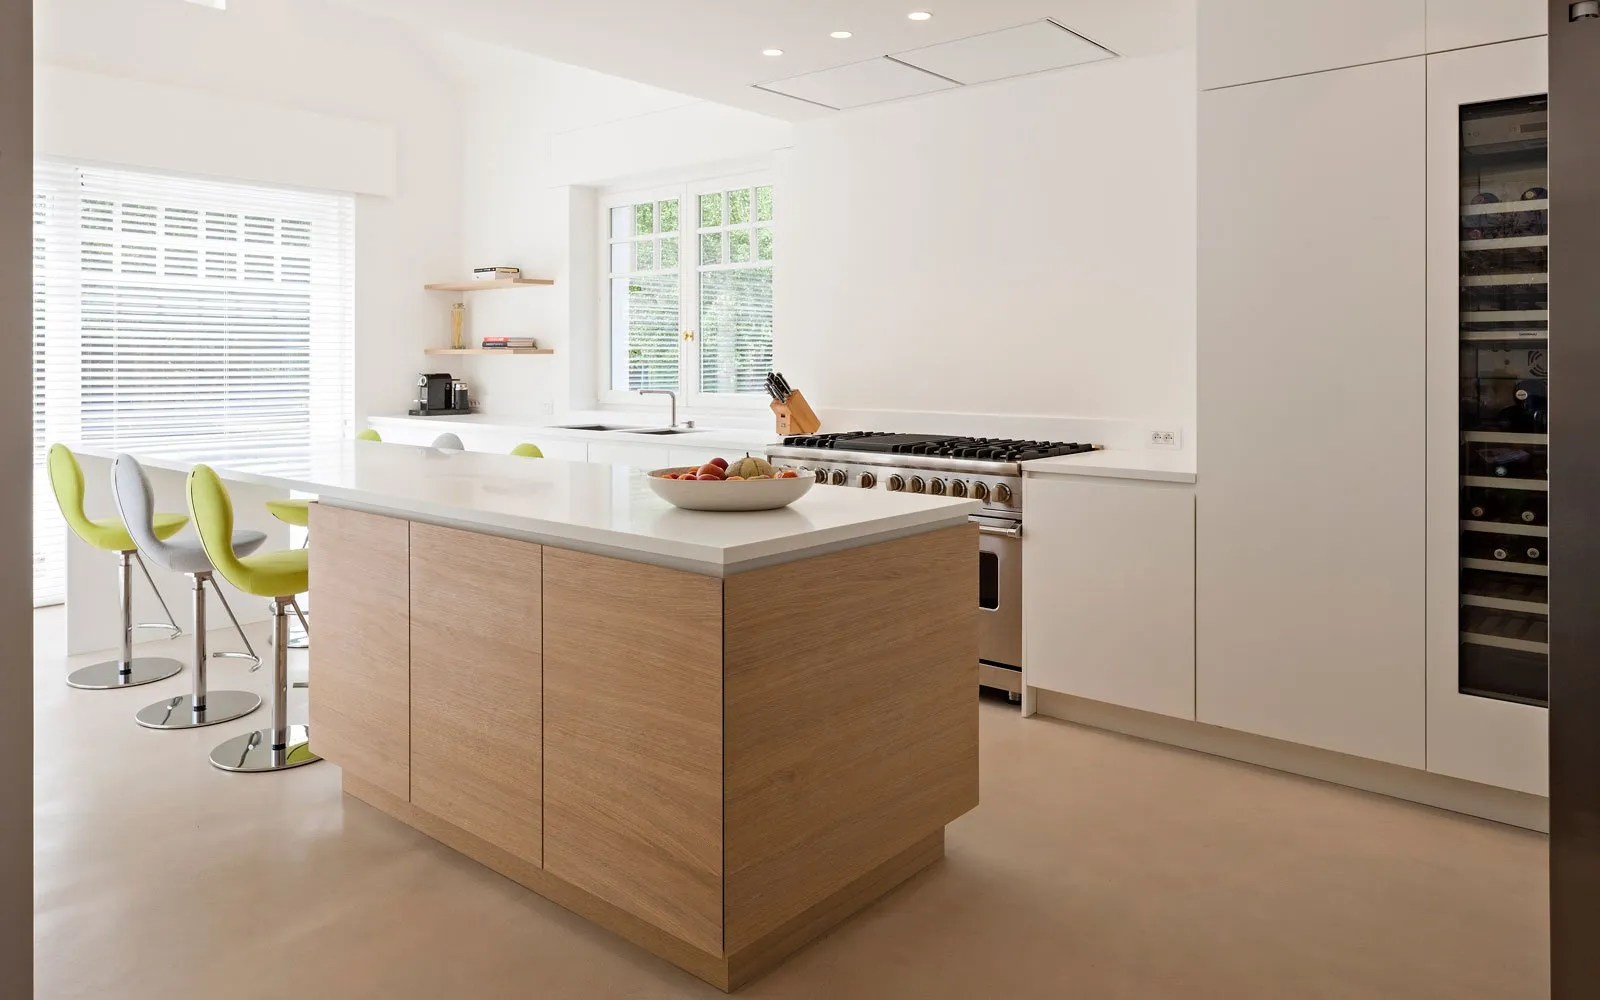 Keuken Amerikaanse Stijl Luxe Amerikaans Interieur | B+ Villas - The Art Of Living (be)